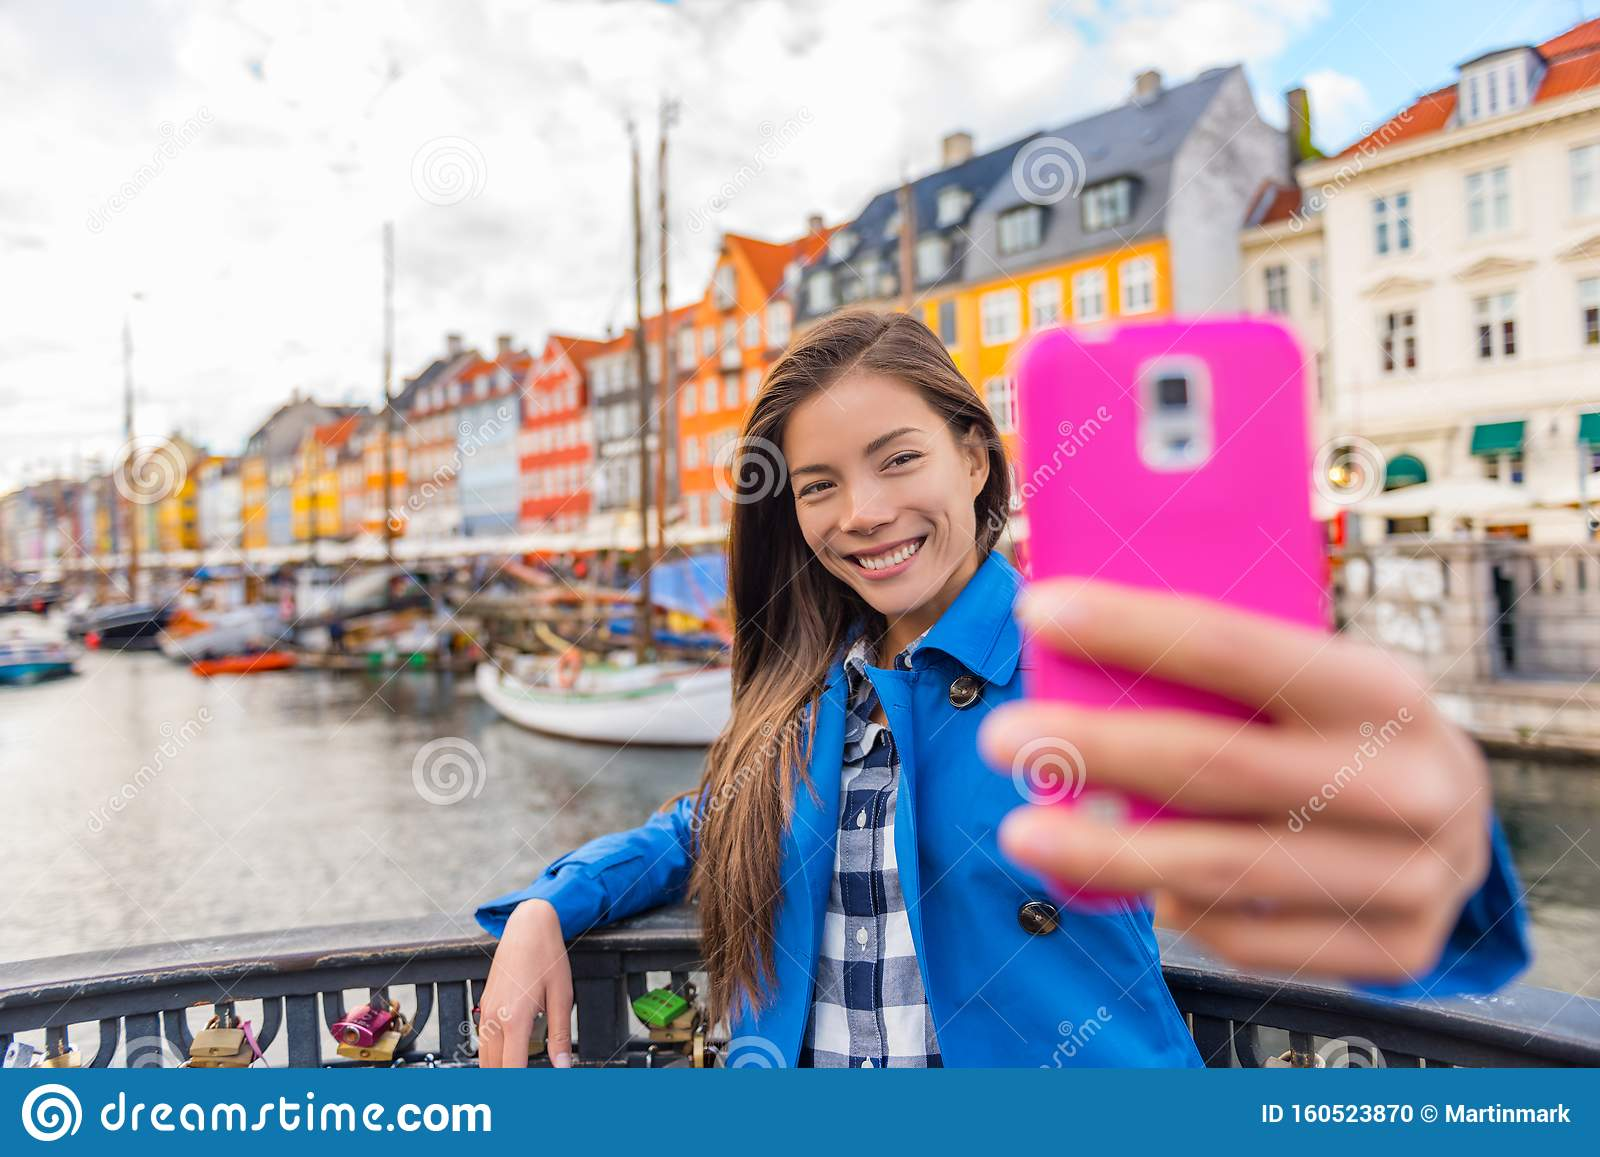 Famous Girl Stock Images, Royalty-Free Images & Vectors ... |Europe Tourist Taking